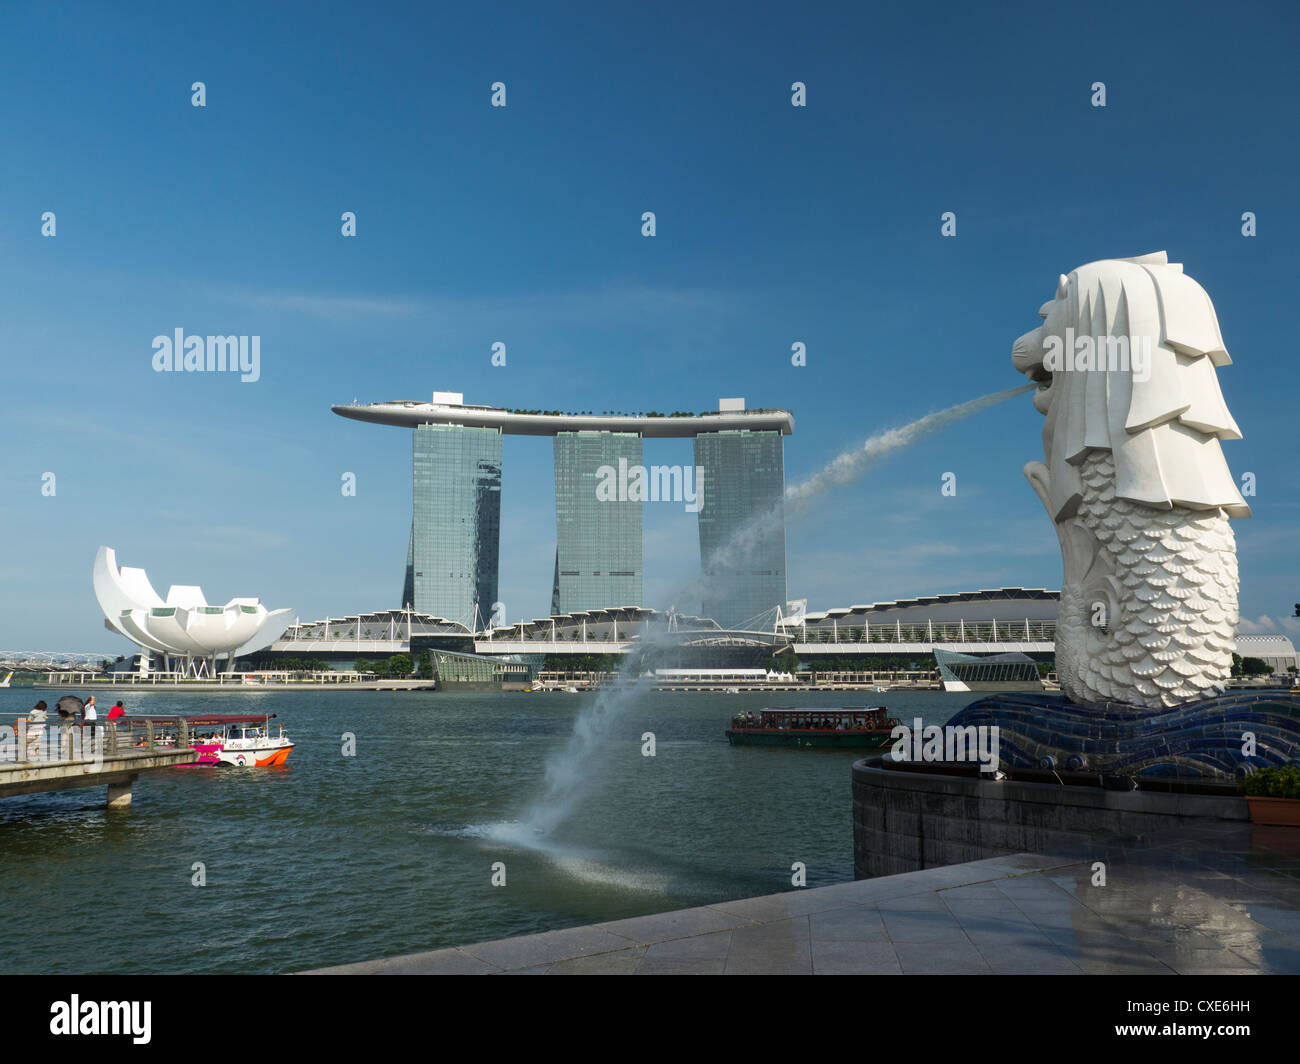 Marina Bay Sands Hotel viewed from Merlion Park, Singapore, Asia - Stock Image